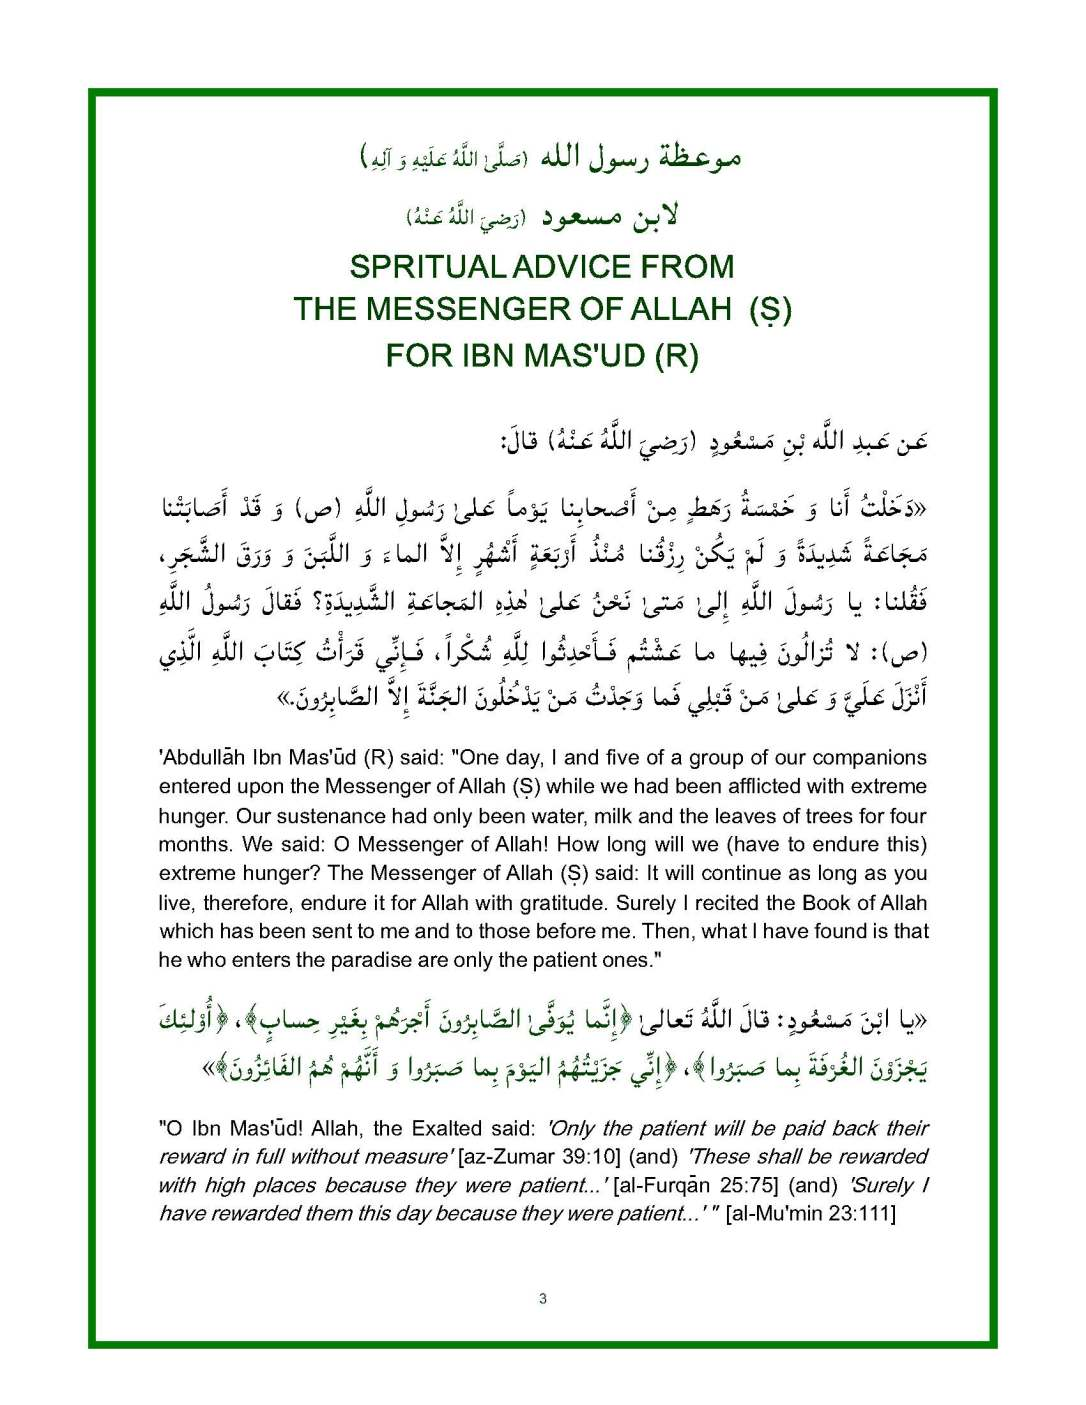 Spiritual-Advice-of-the-Messenger-of-Allah-for-Ibn-Masud-unlocked_Page_03